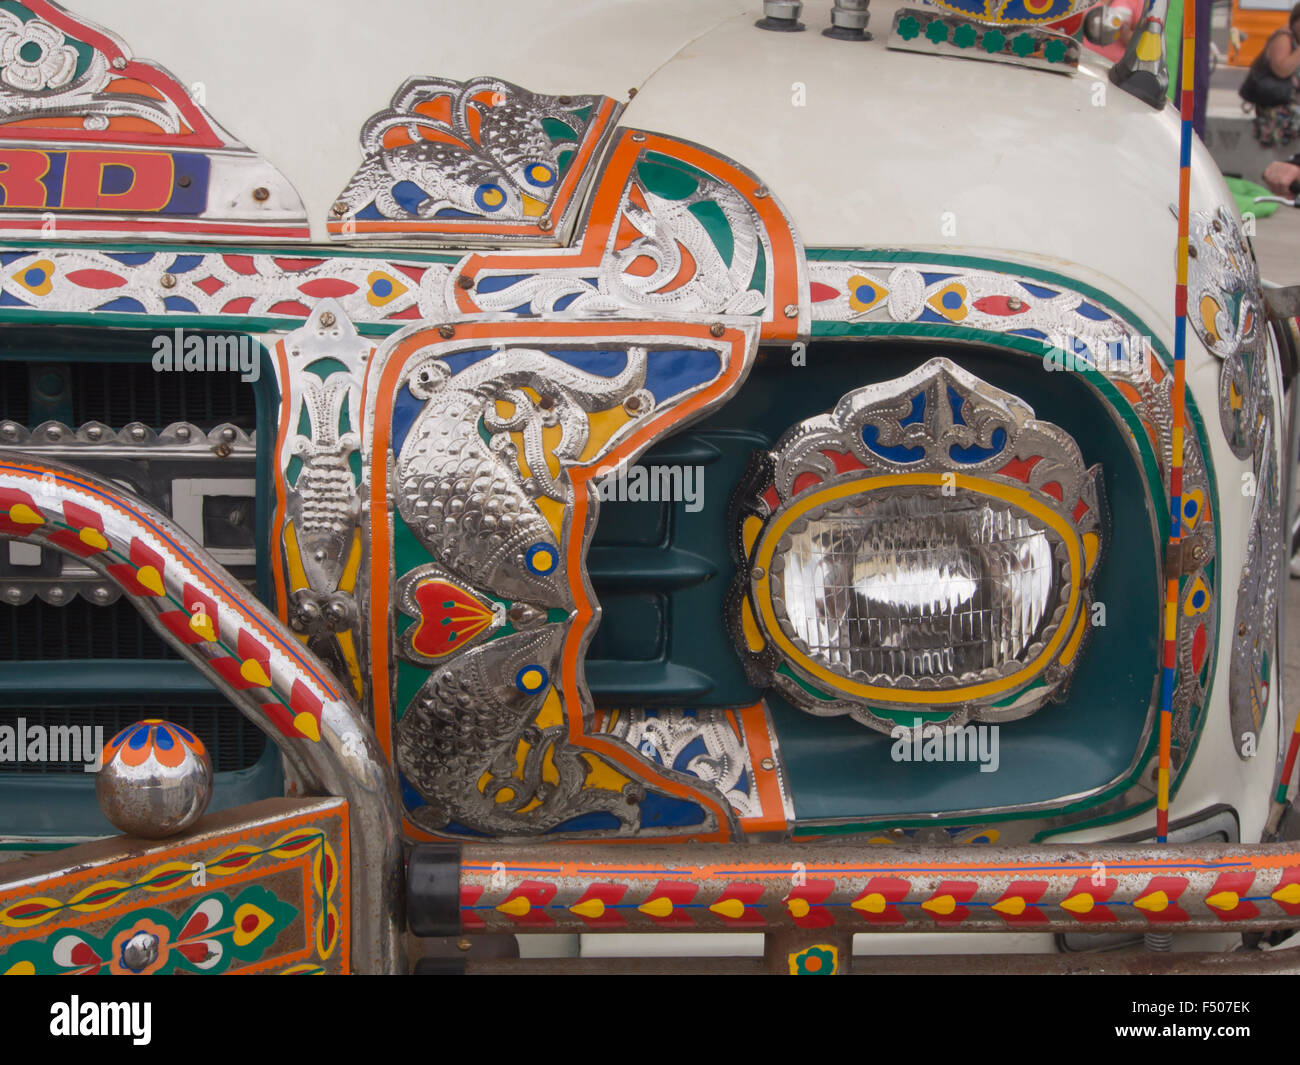 Details from an elaborate and artistically decorated colourful Bedford truck in Pakistani or Indian style, front - Stock Image